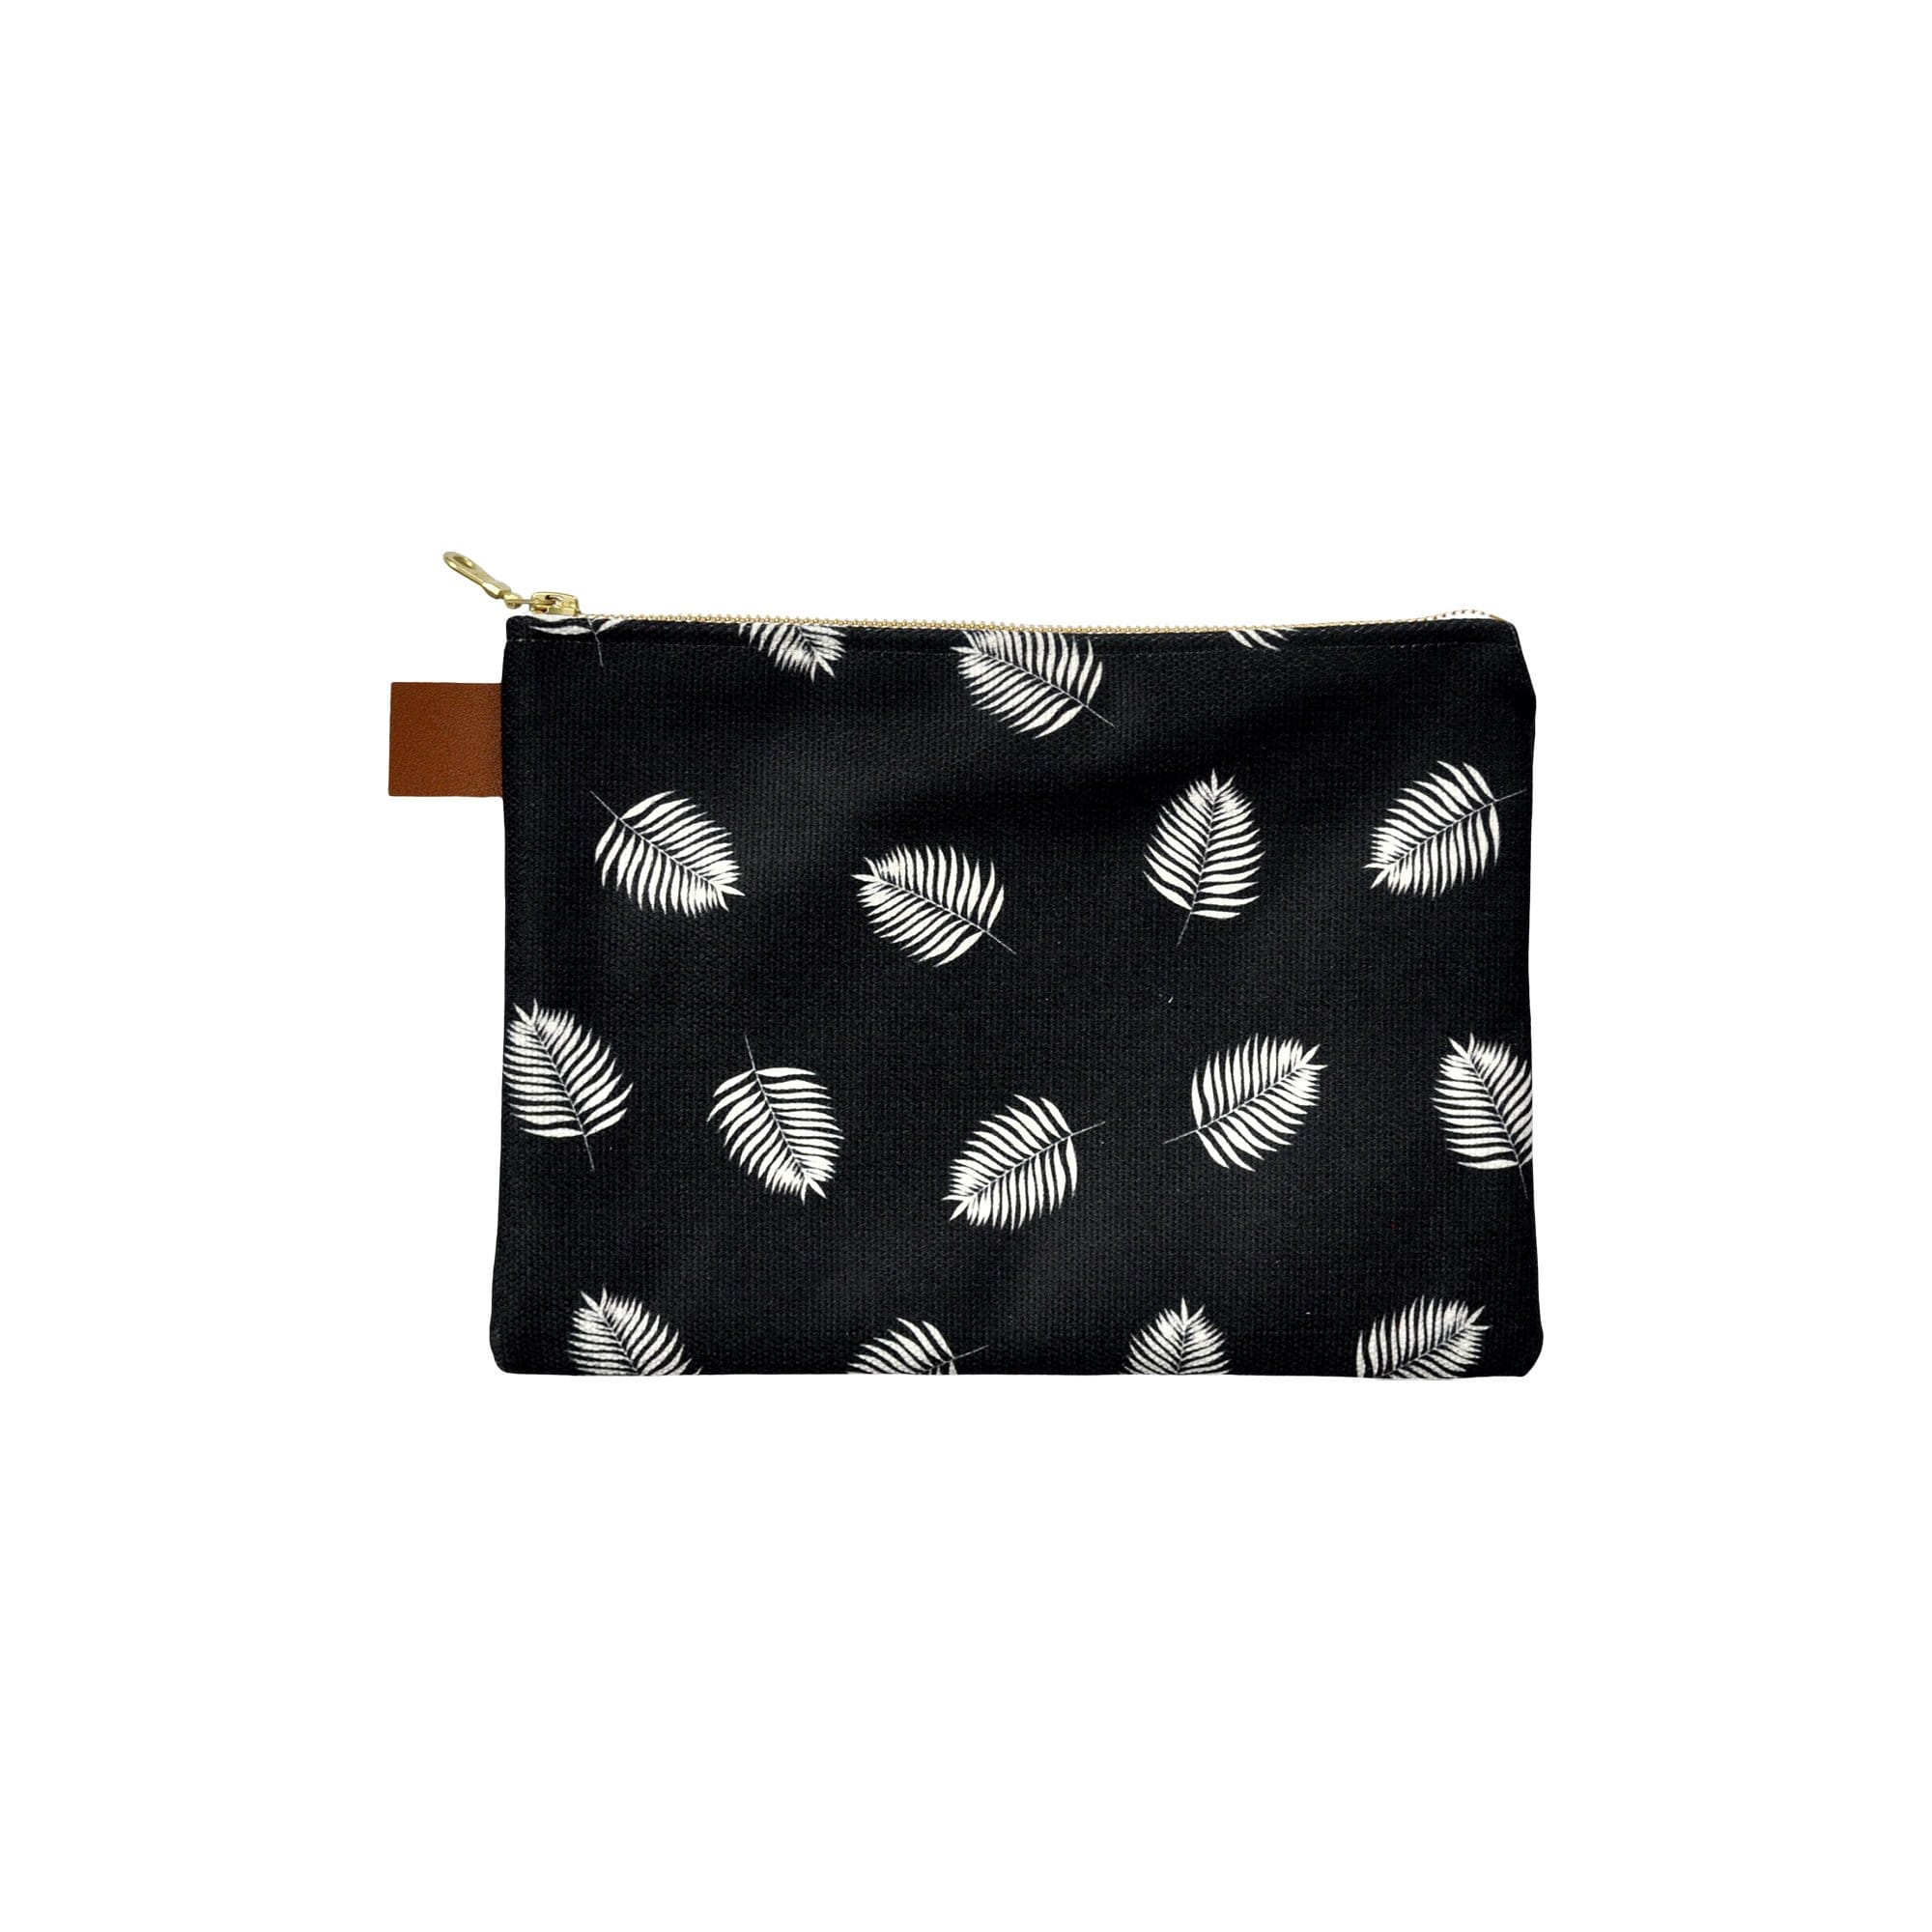 Swell Made Co. Handbags + Clutches Palms Canvas Pouch